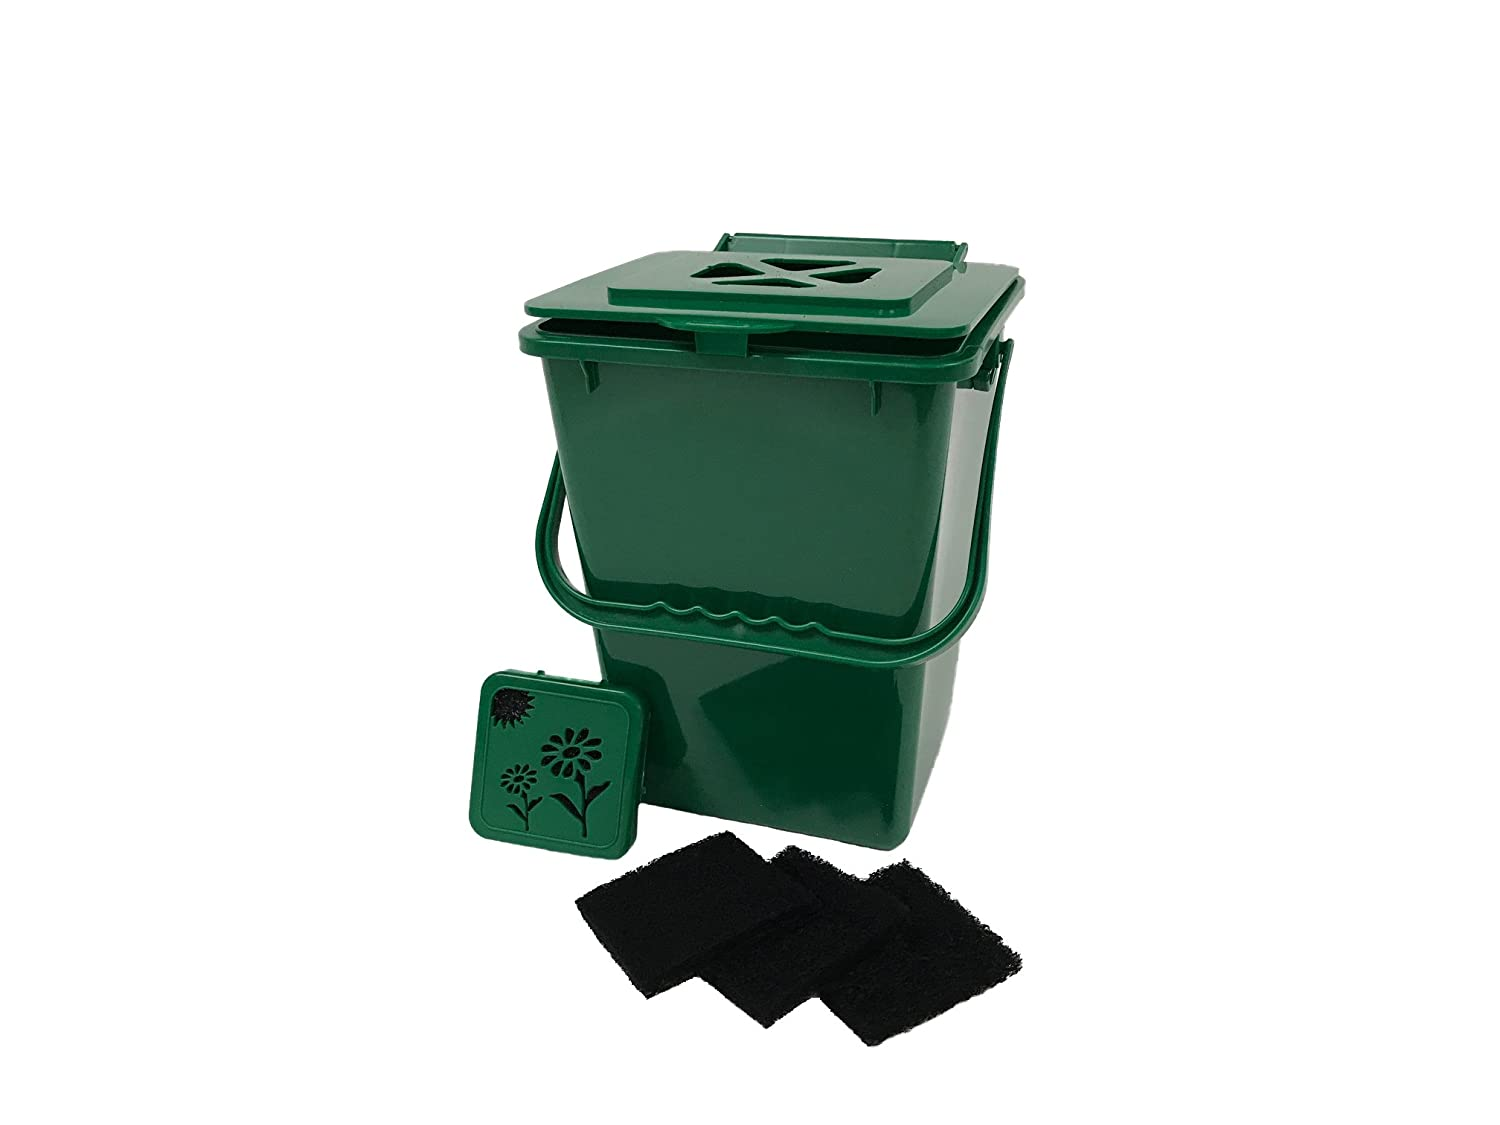 Exaco Trading Co. ECO-2000 Plus Kitchen Compost Waste Collector, 2.4 Gallon Deluxe Green